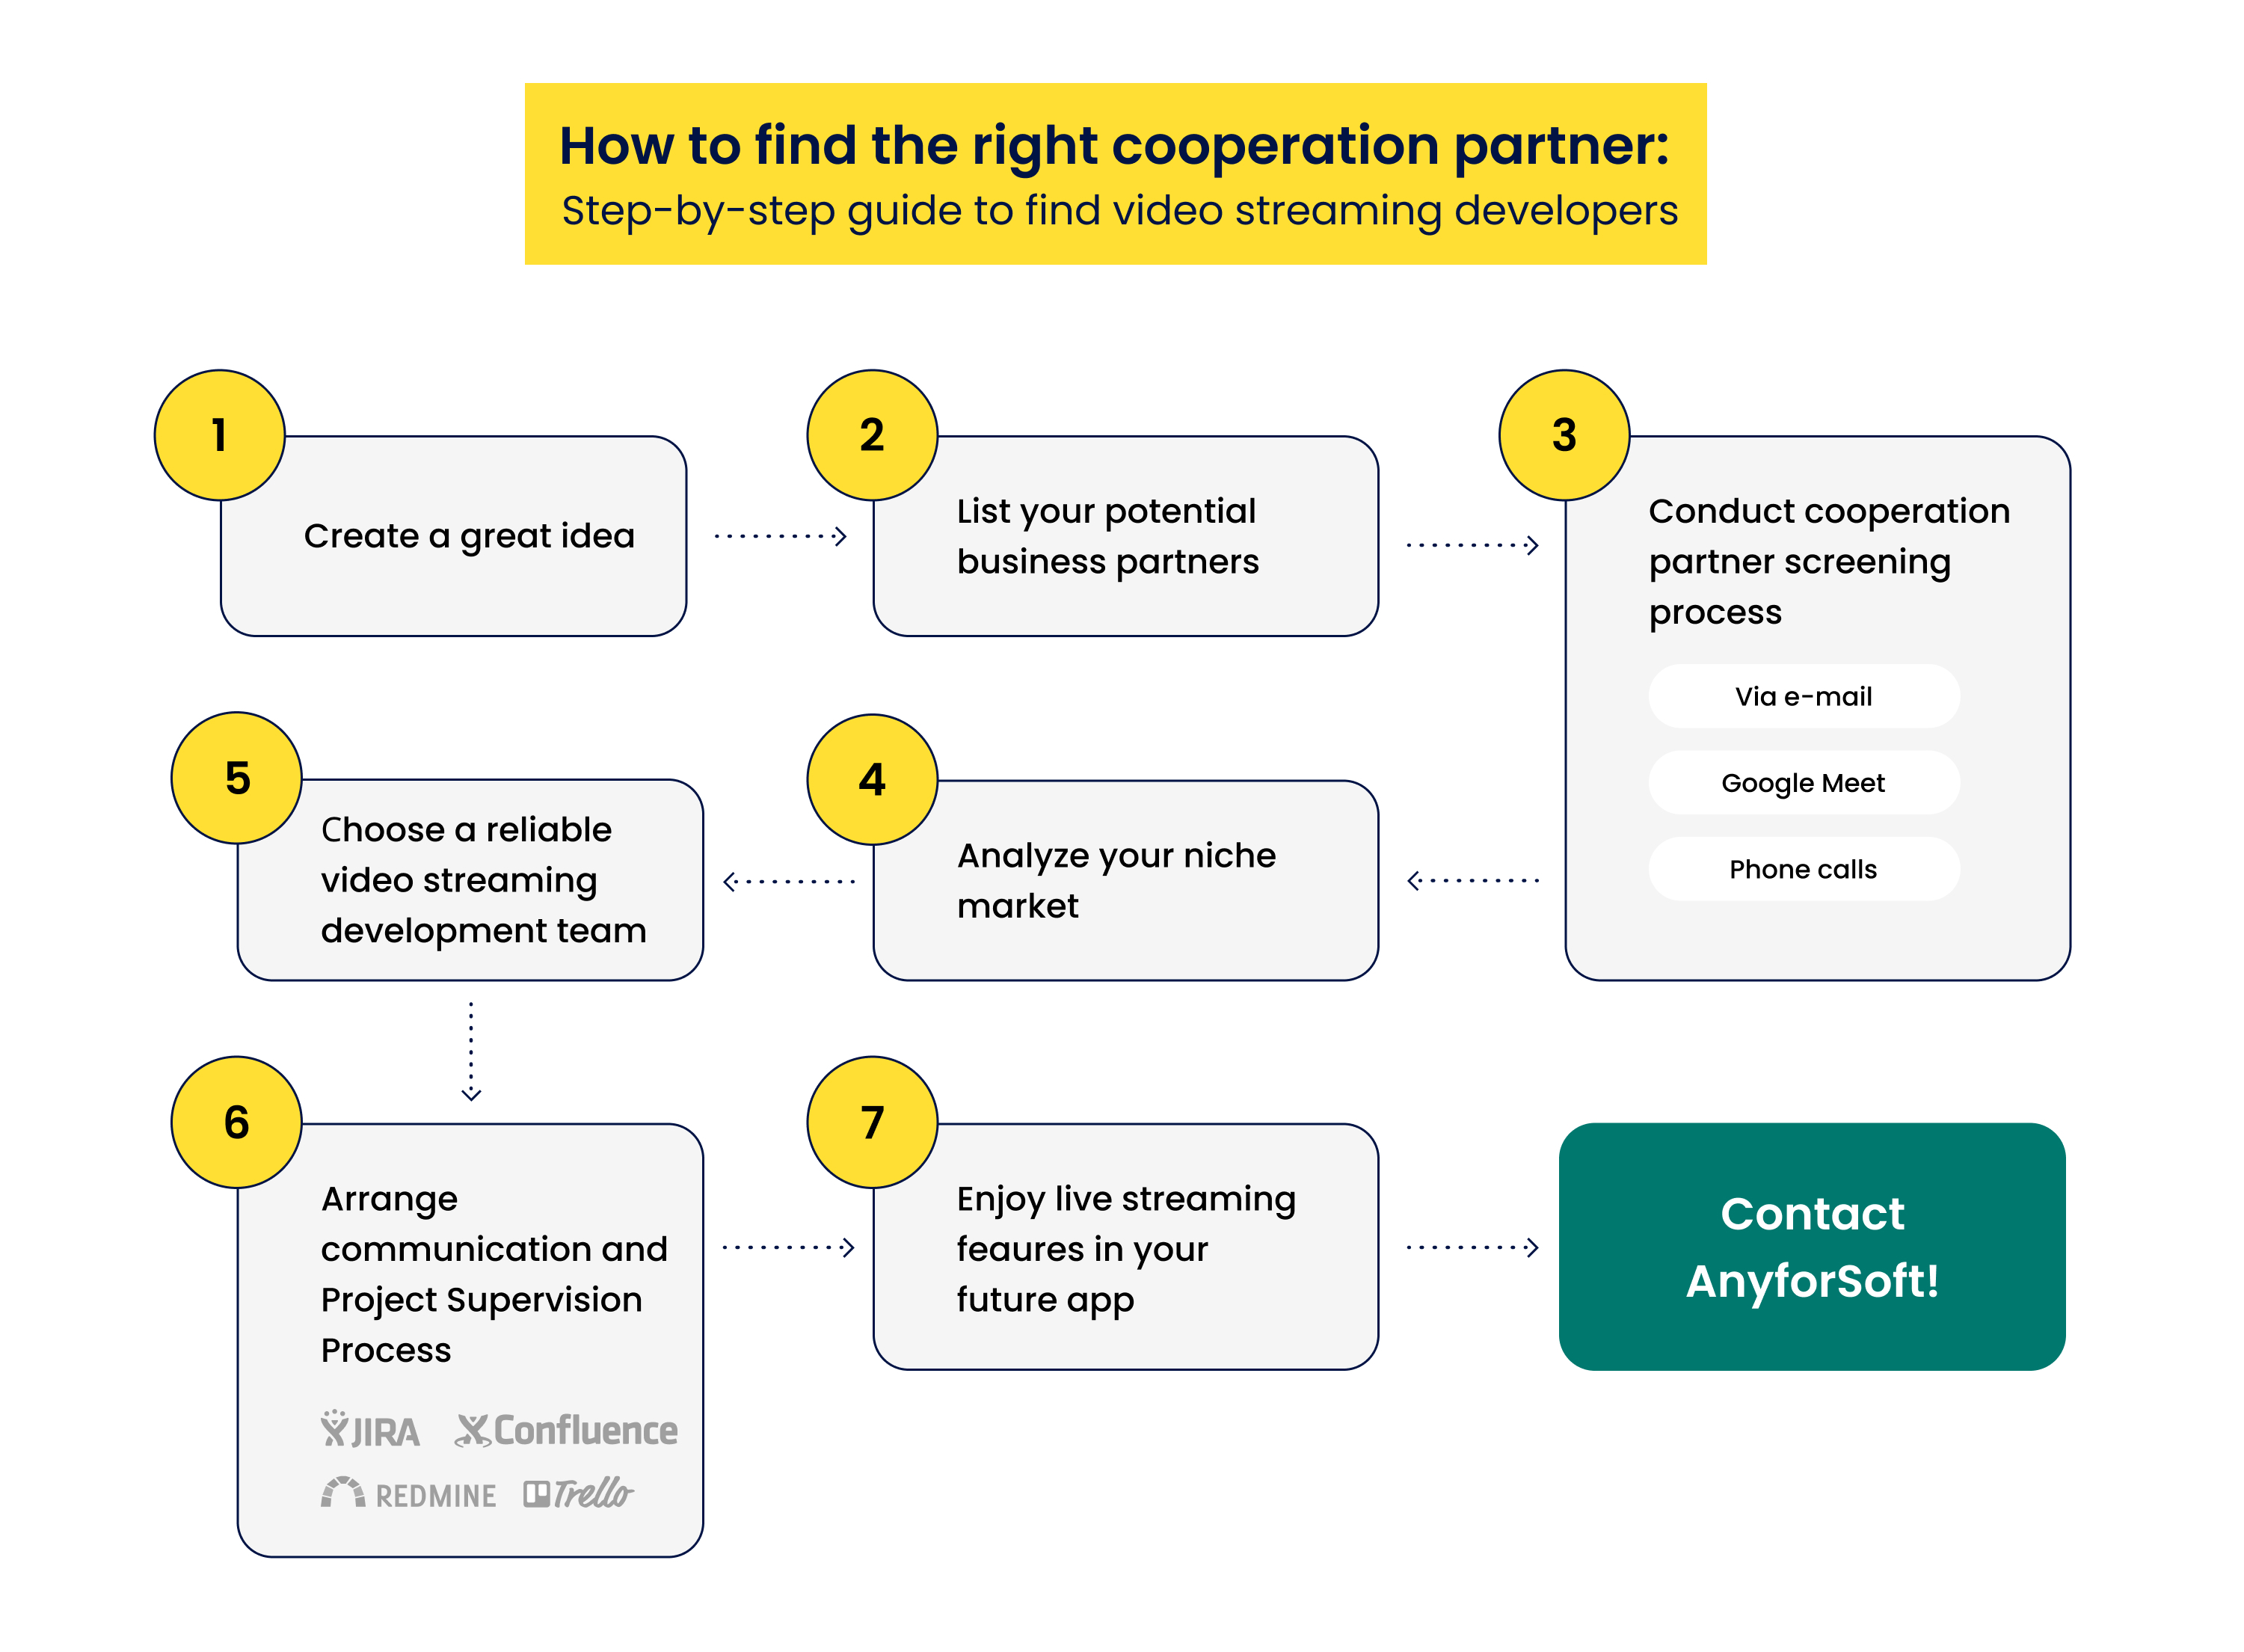 How to find the right cooperation partner